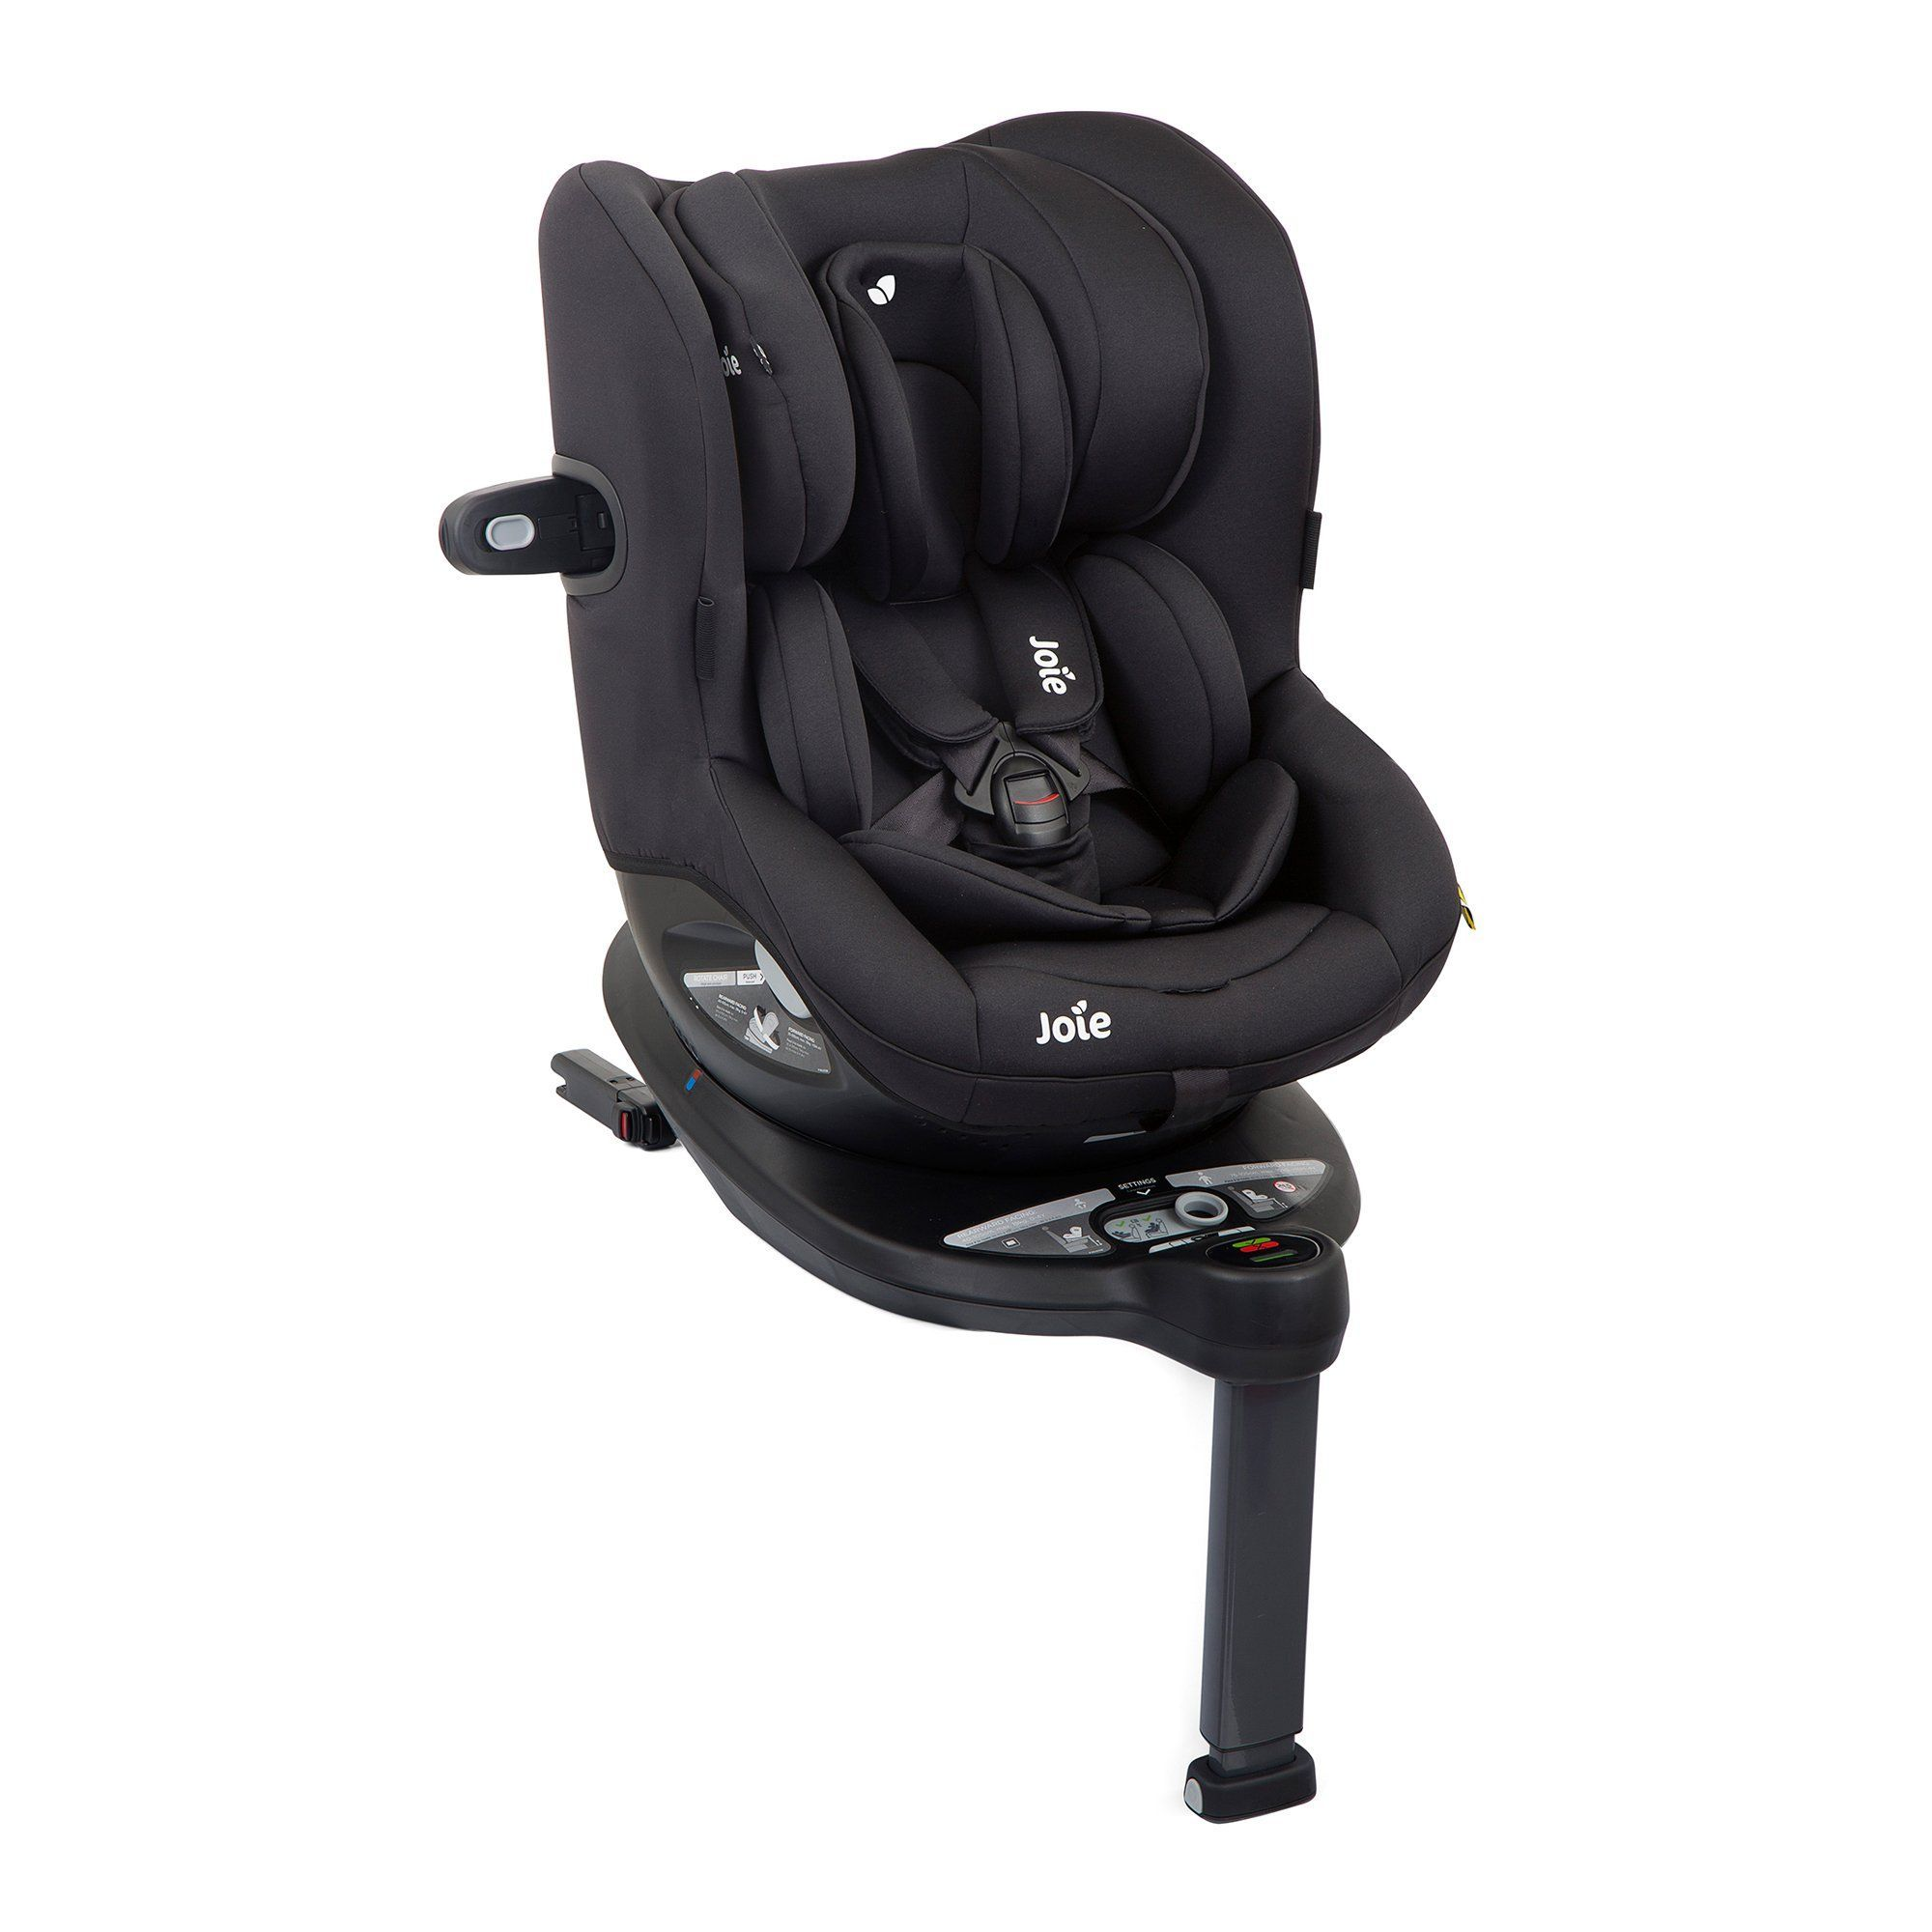 Joie i-Spin 360 0-4 Years i-Size Car Seat - Coal (Black) - Pushchair Expert